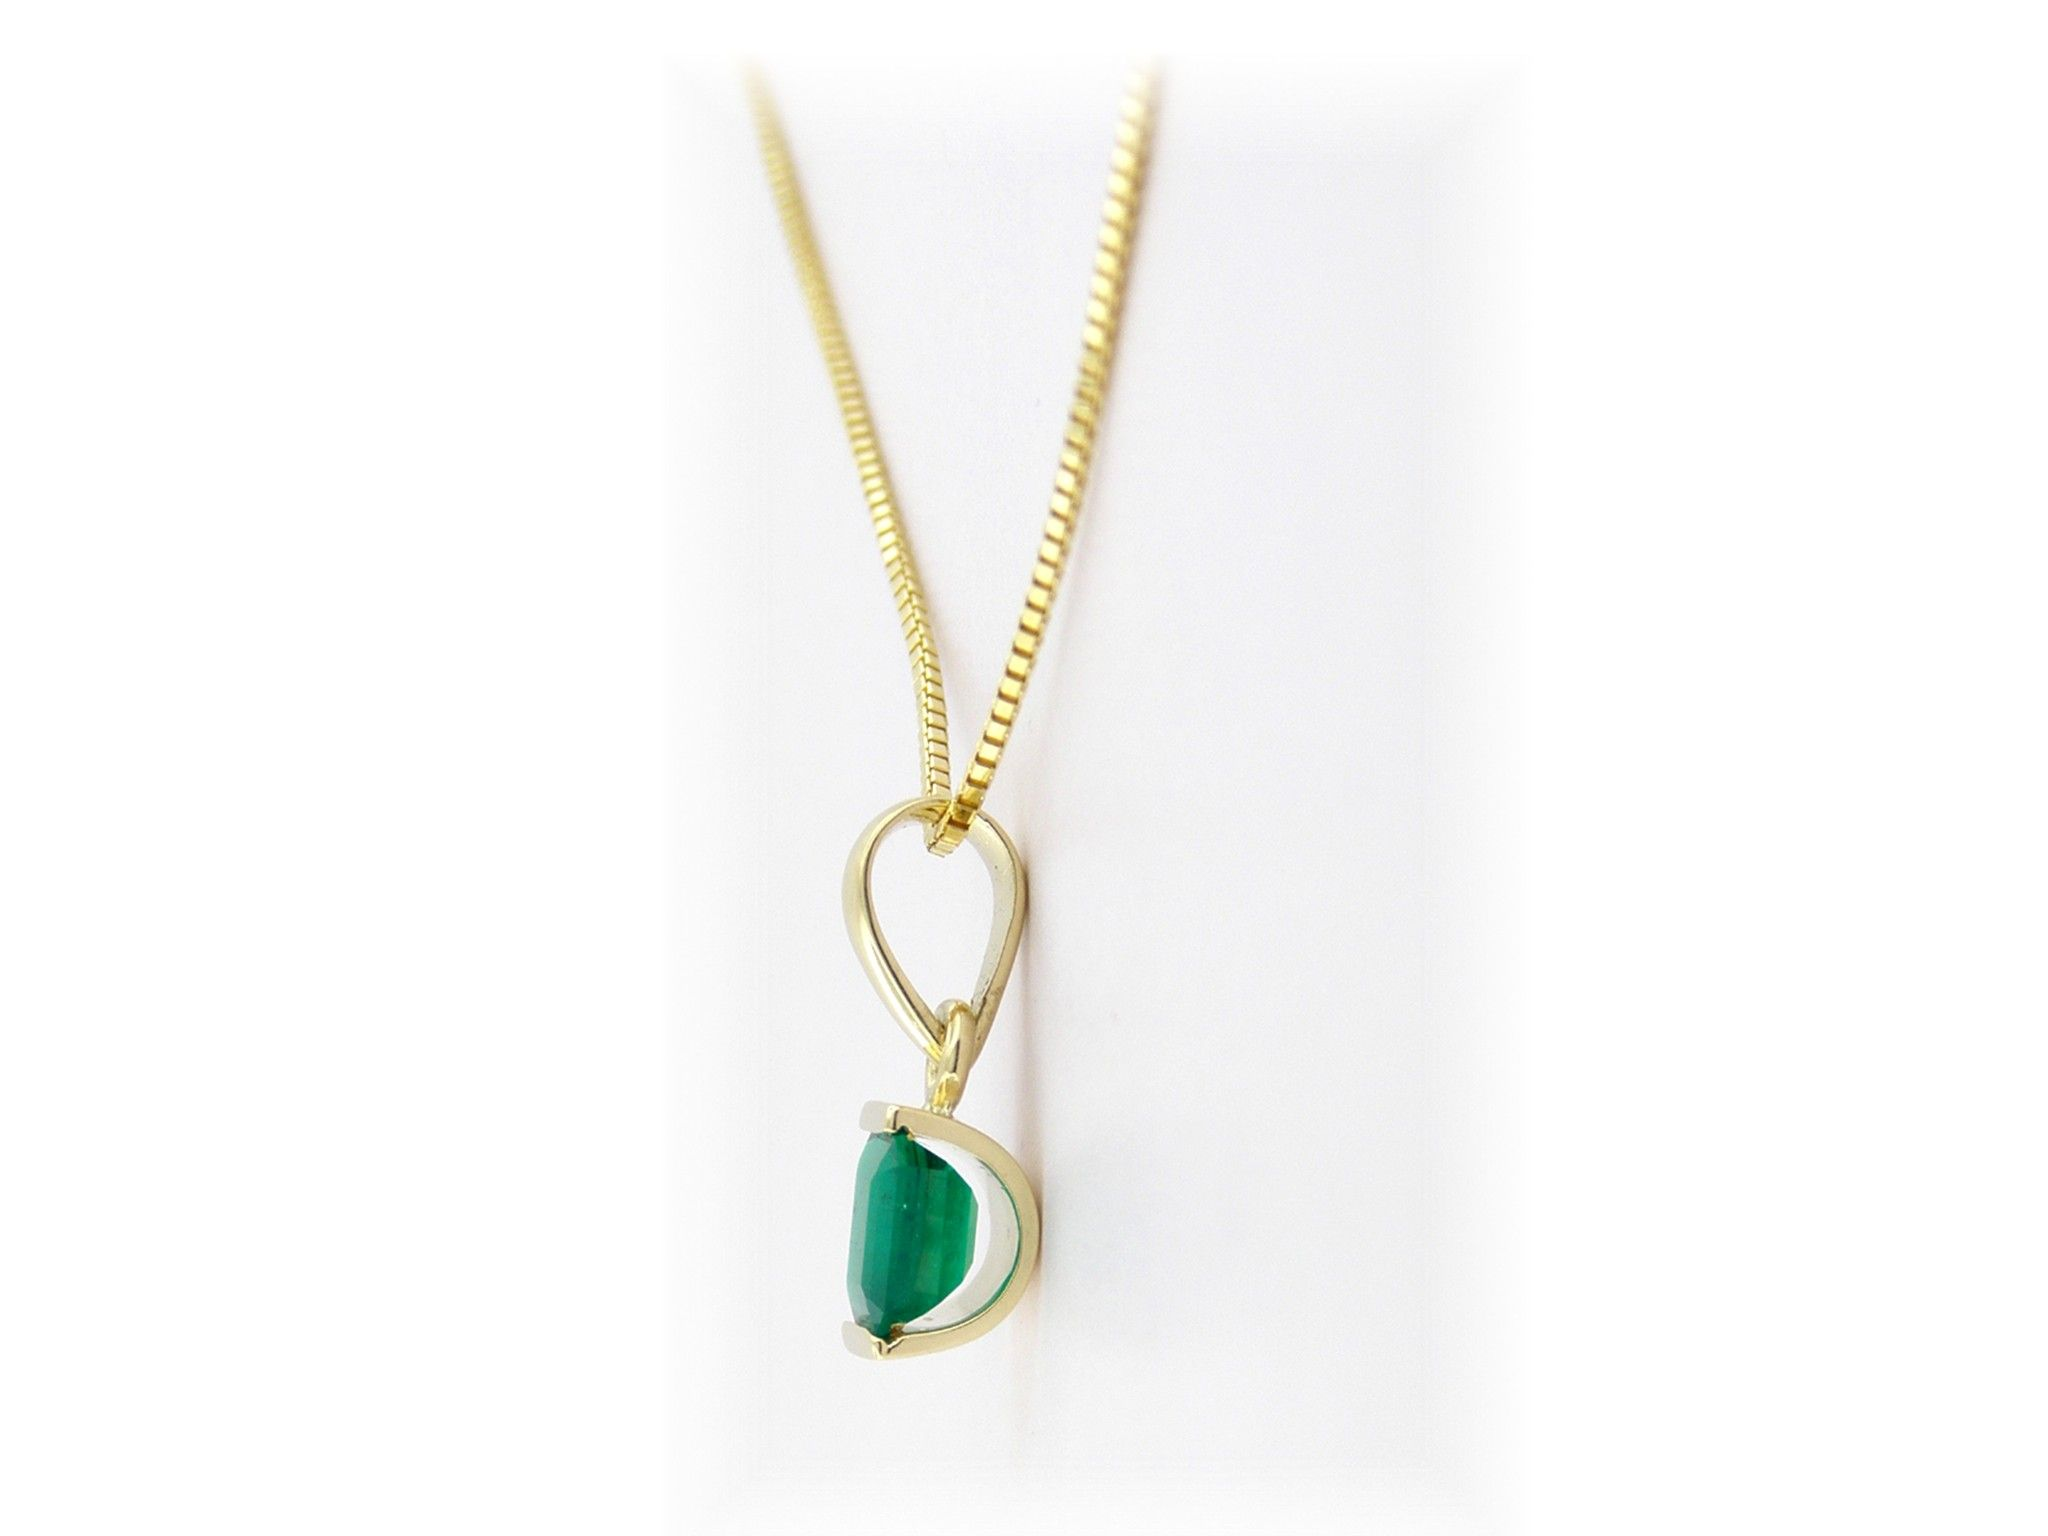 ct in natural gold diamonds jewelry pendant with emerald u